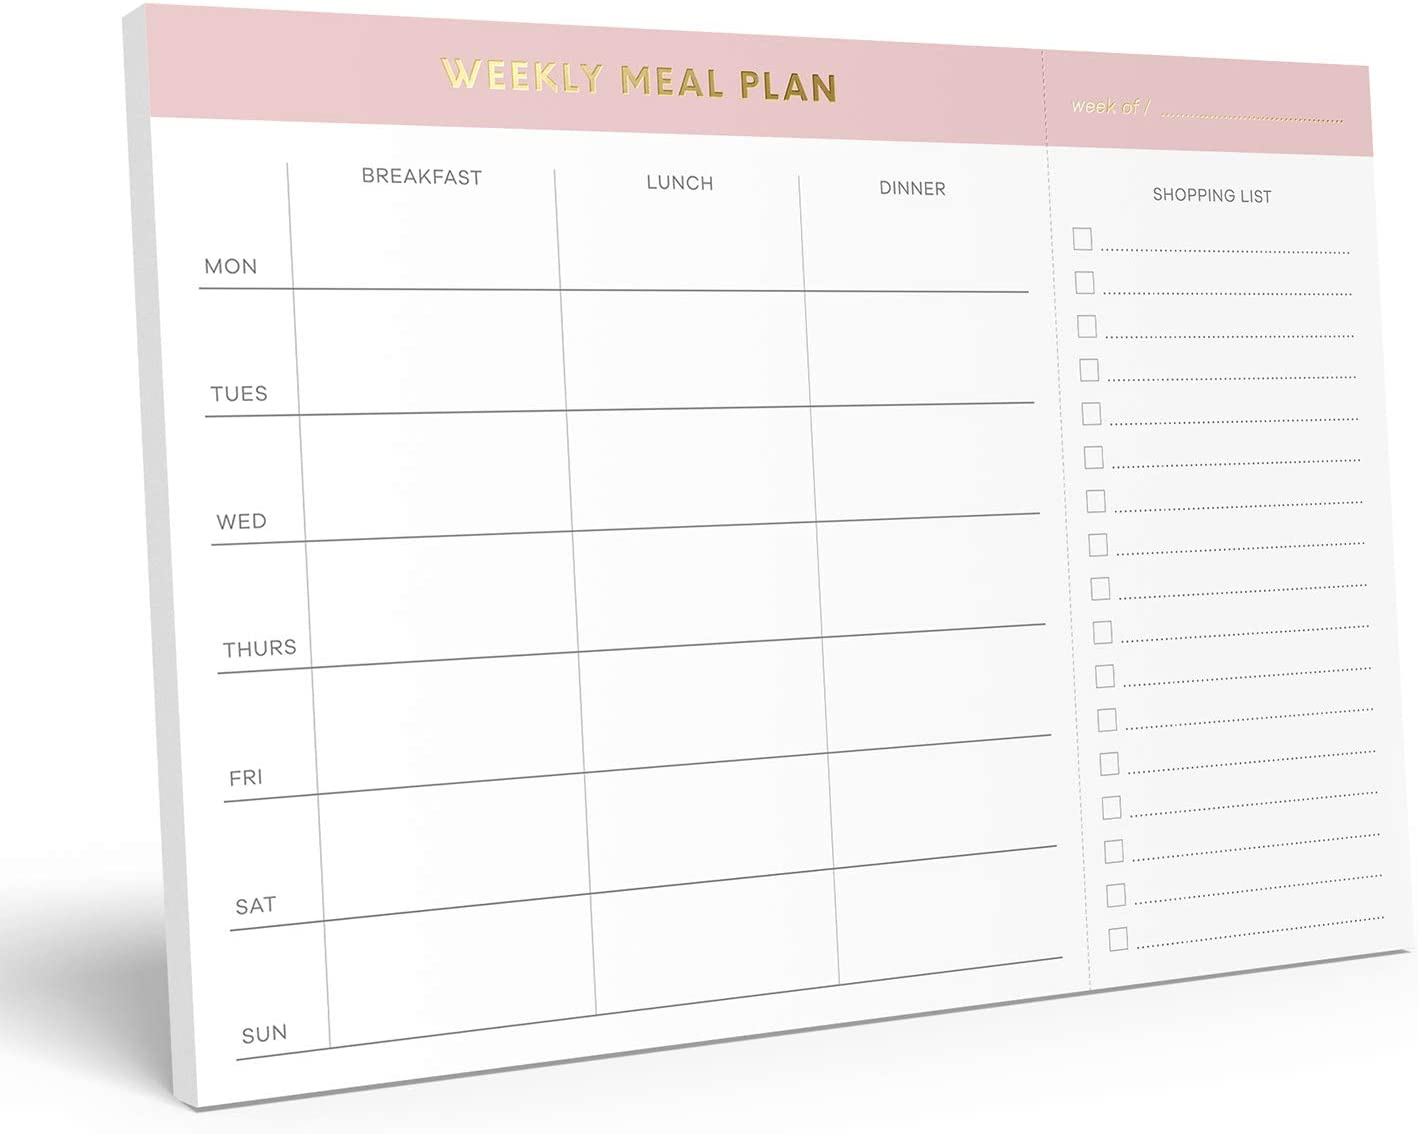 "Sweetzer & Orange Weekly Meal Planner and Grocery List Magnetic Notepad. Pink 10x7"" Meal Planning Pad with Tear Off Shopping List. Plan Weekly Menu Food for Weight Loss or Dinner List for Family!"